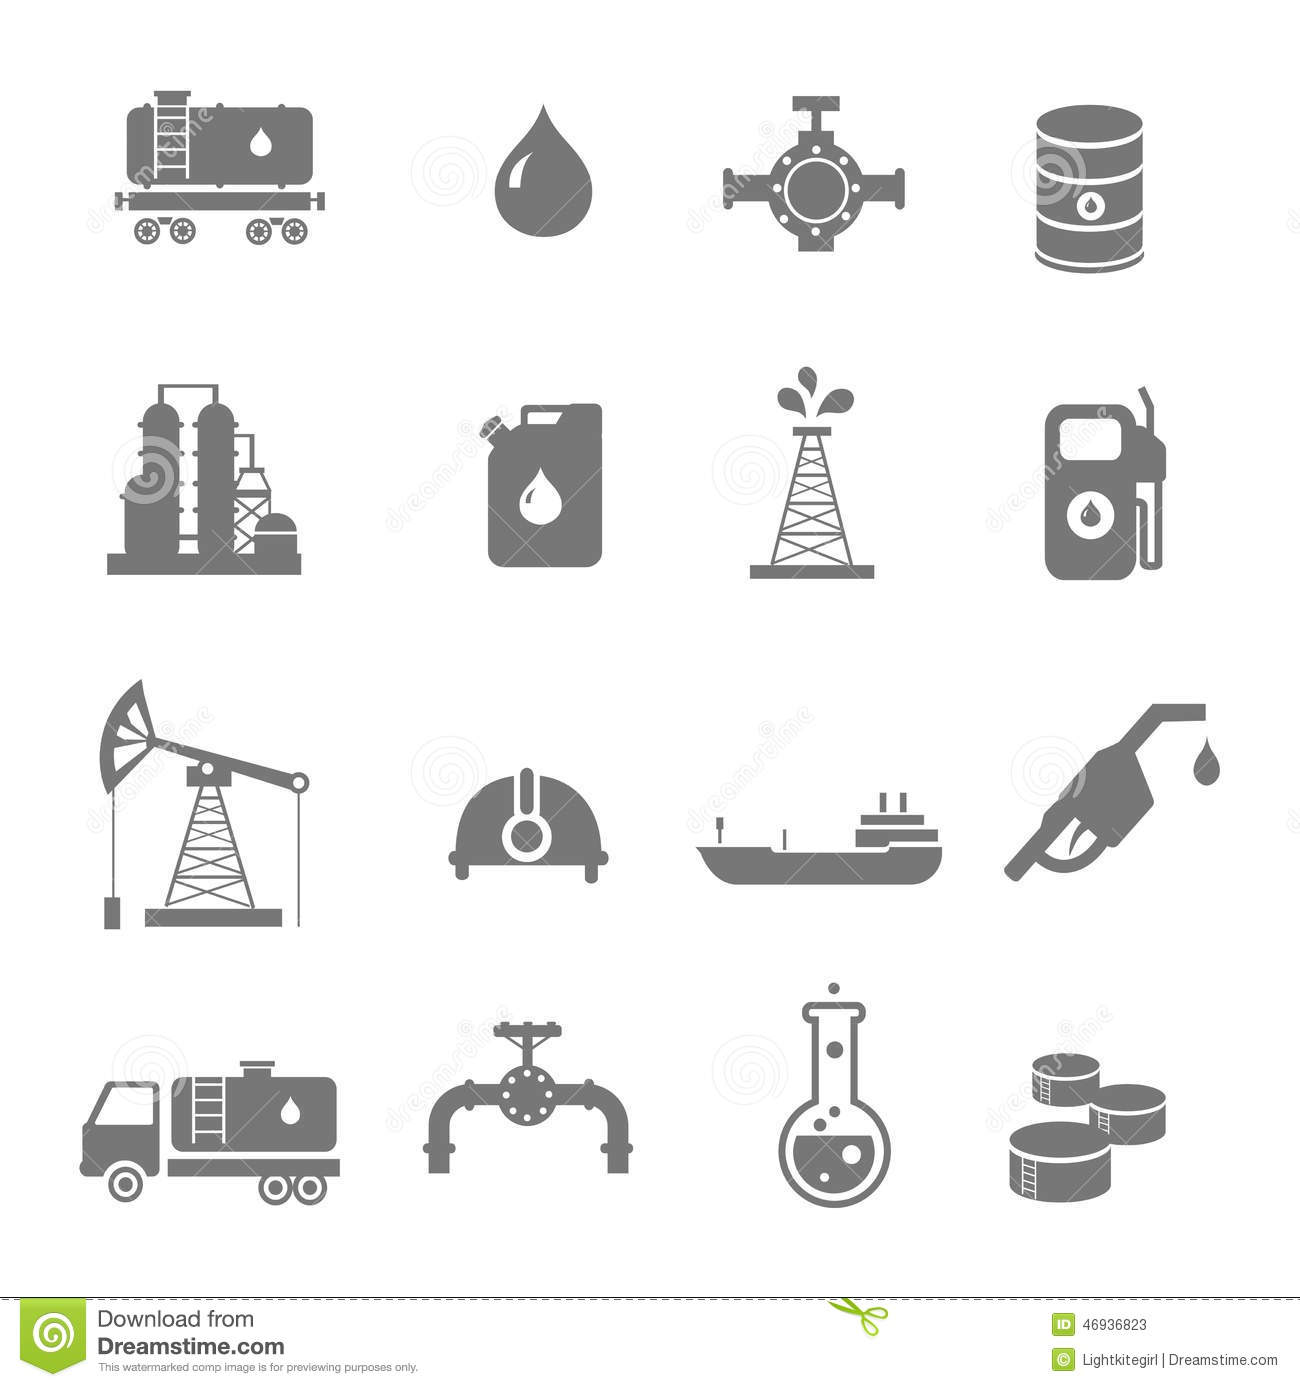 Oil industry gasoline processing symbols icons set stock vector oil industry gasoline processing symbols icons set biocorpaavc